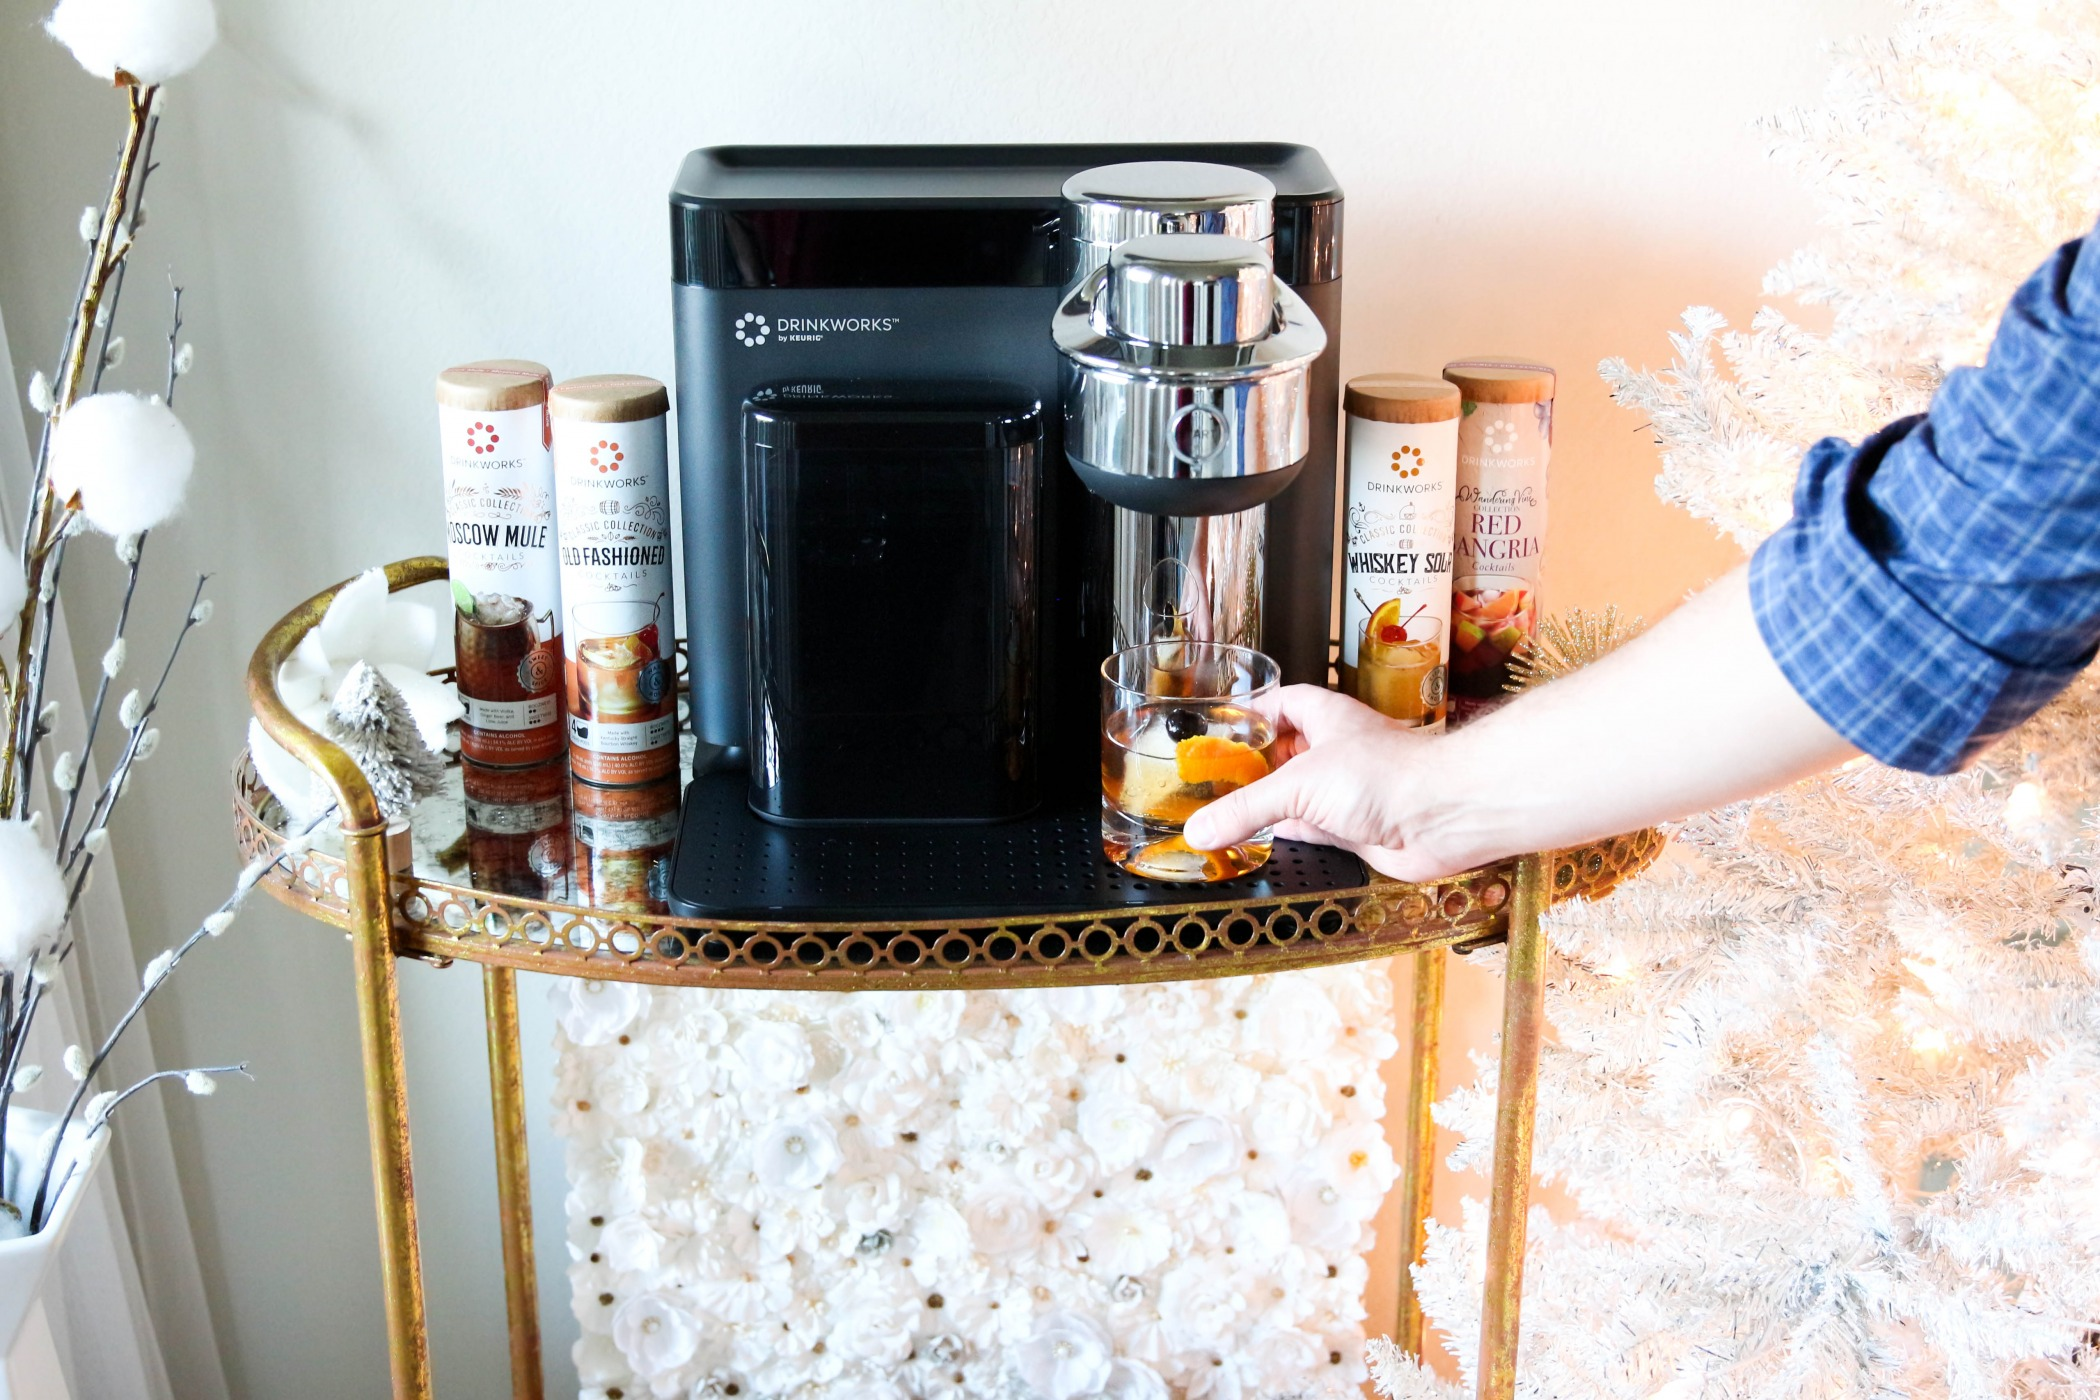 Playtime with Drinkworks Home Bar by Keurig + Classic Holiday Music